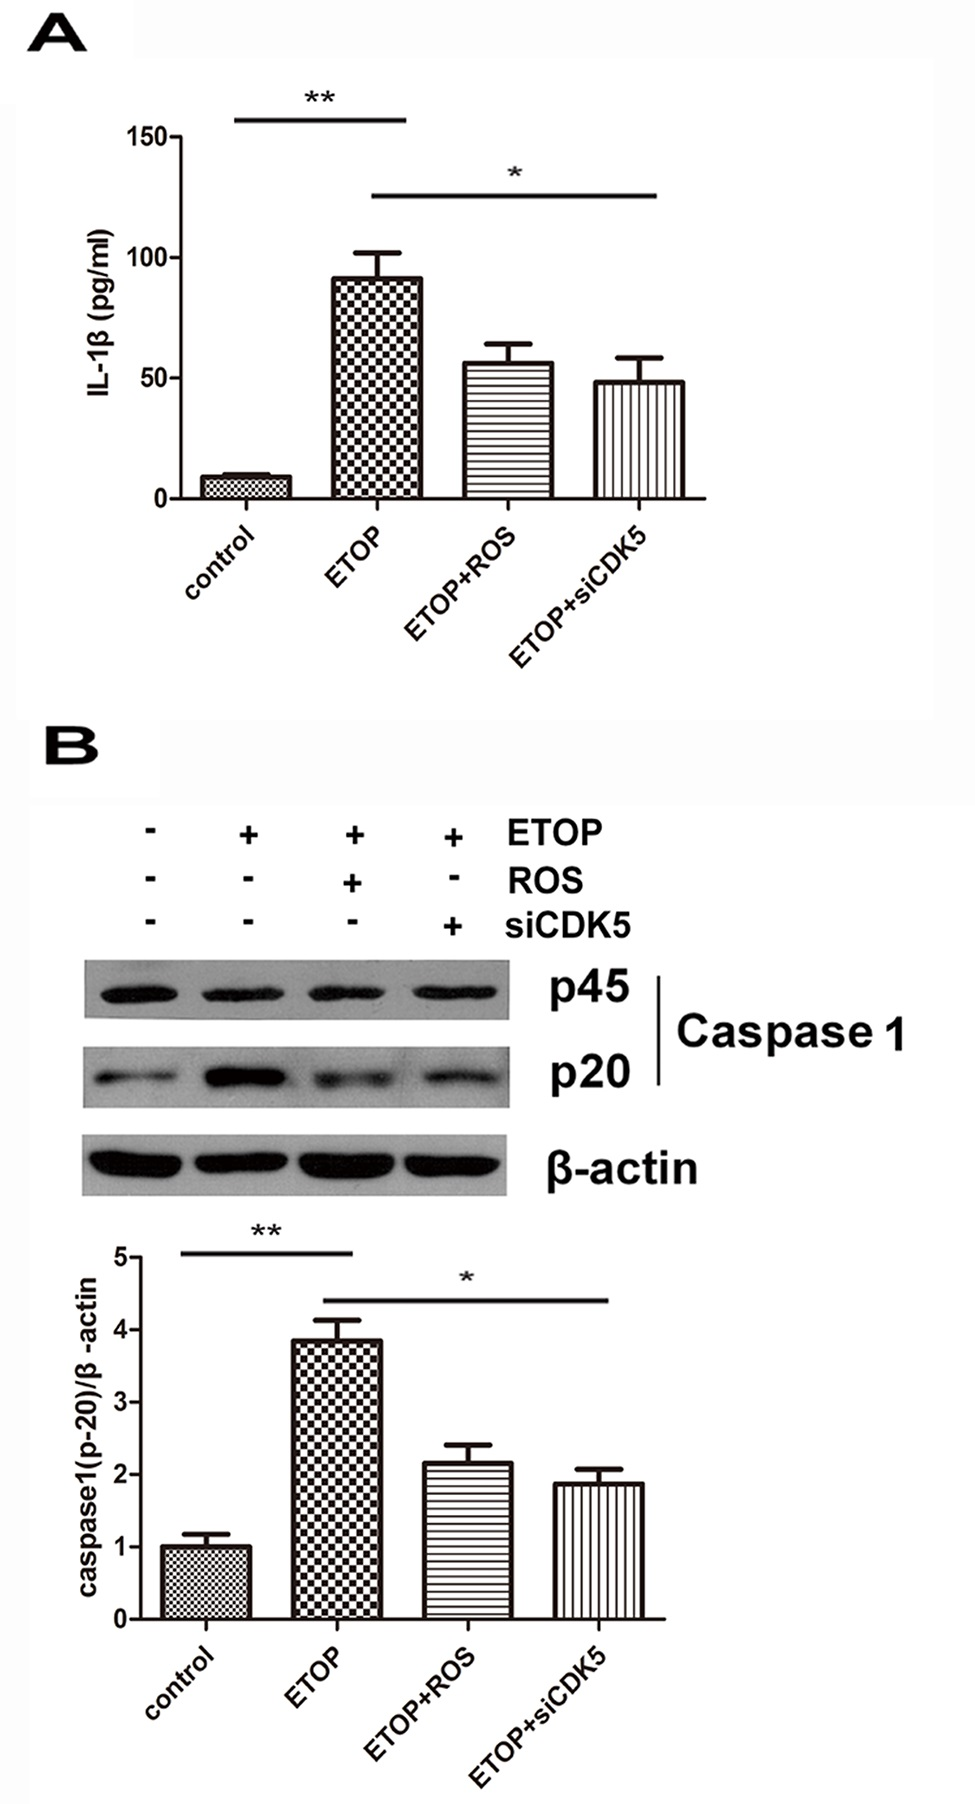 CDK5 provoked the production of IL-1β in cortical neurons. Cultured primary cortical neurons were treated with 10 μM ETOP or 10 μM ETOP plus ROS, a CDK5 inhibitor, for 12 h. For RNA interference, cells were pretreated with siCDK5 for 24 h, followed by 10 μM ETOP plus siCDK5 incubation for another 12 h. Untreated cells were used as the control group. (A) The IL-1β level in the supernatant of the cell culture was assessed by ELISA. (B) The protein expression levels of pro-caspase 1 (p45) and activated caspase 1 (p20) were assessed by Western blotting. *p<0.05; **p<0.01.